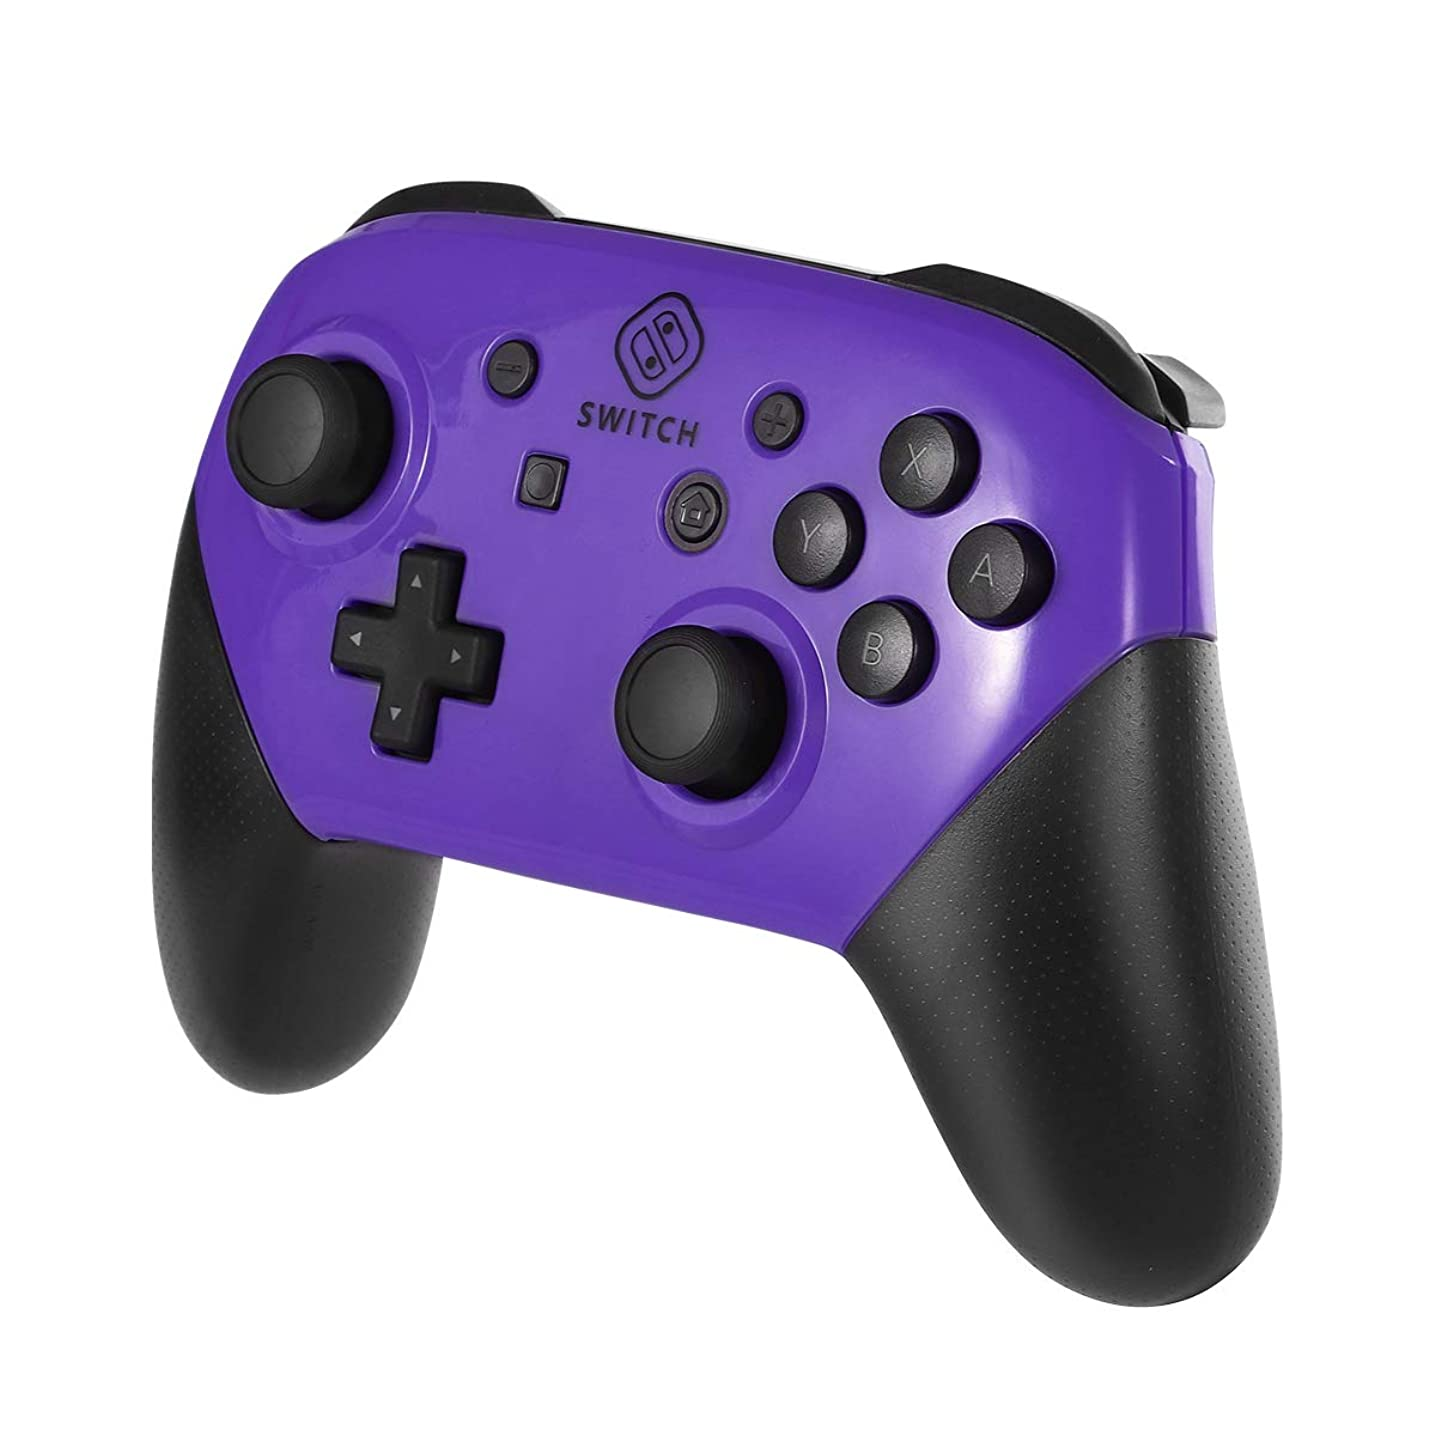 eXtremeBee Replacement Shell Case for Switch Pro Controller, Colorful Anti-Slip Hand Grip Shell Cover Super Switch DIY Faceplate and Backplate Case (Purple)